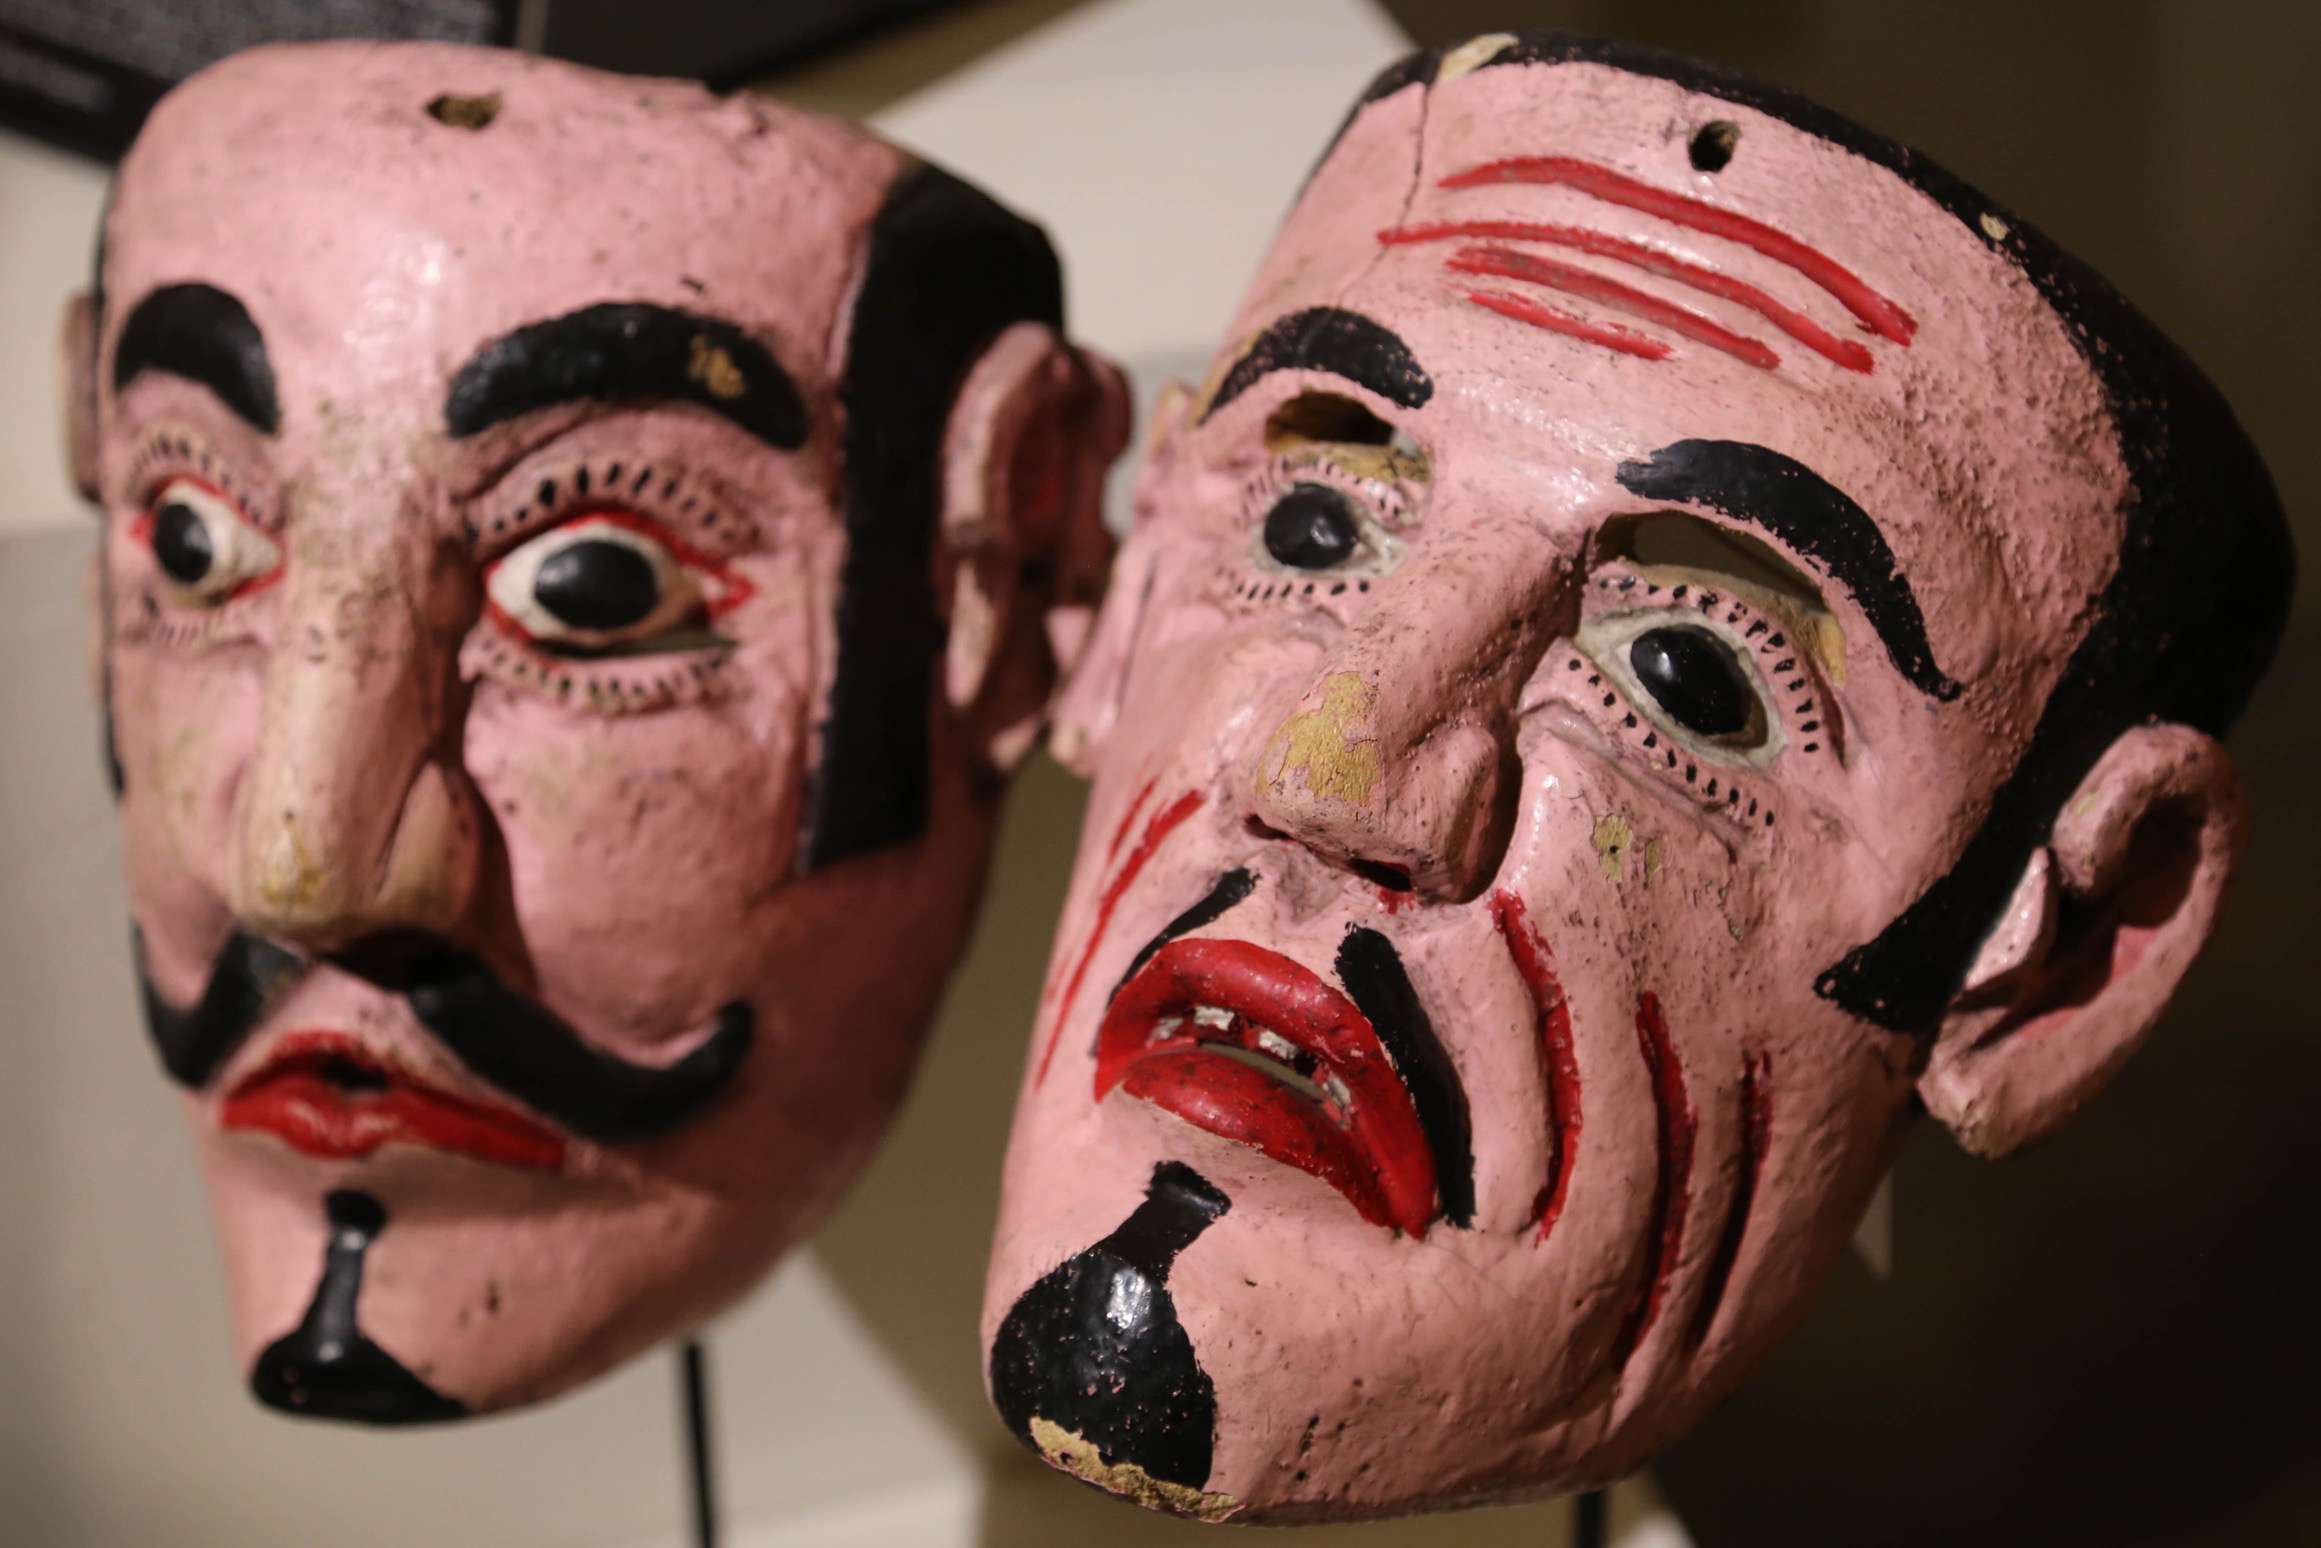 Though only wood and paint, the masks in the museum convey emotion and pathos.